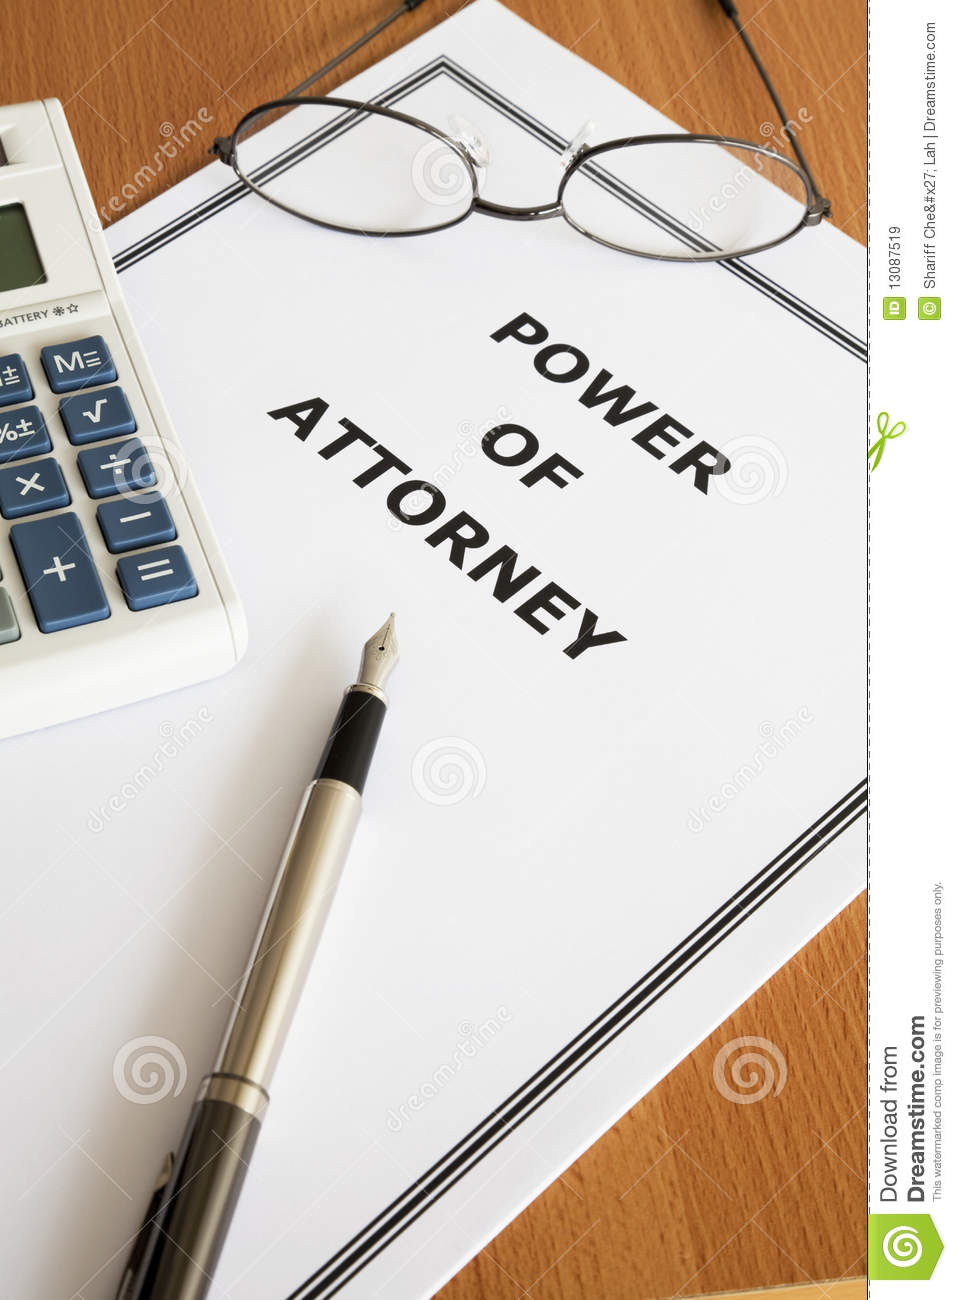 Power Of Attorney Clipart.